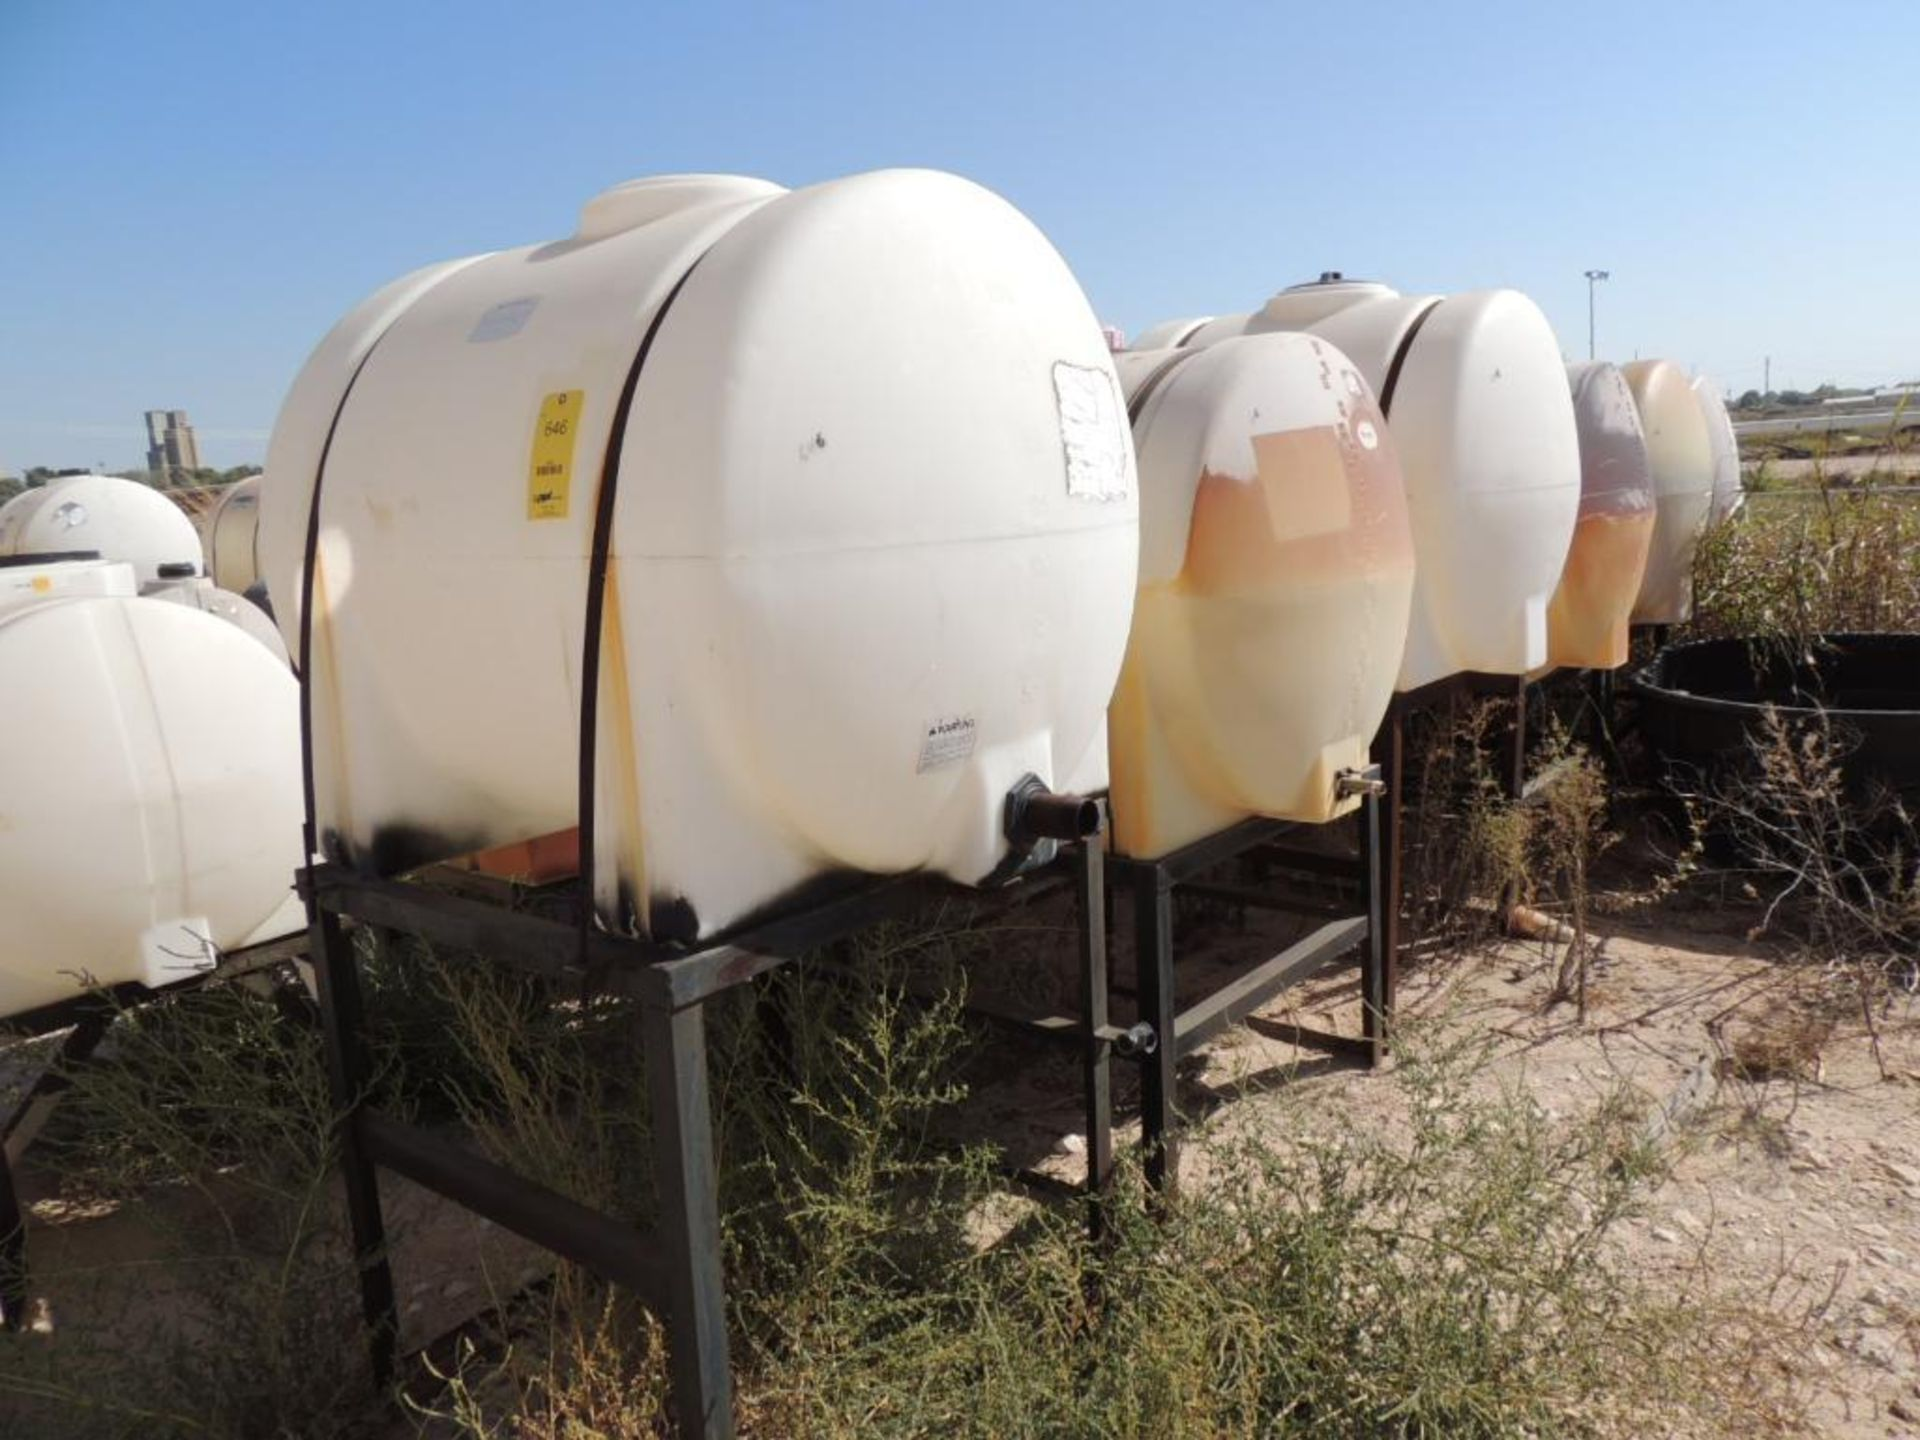 LOT: (6) Poly Tanks - (4) 230 Gallon, (2) 225 Gallon (LOCATED IN HENNESSEY, OK. - IN CHEM YARD)